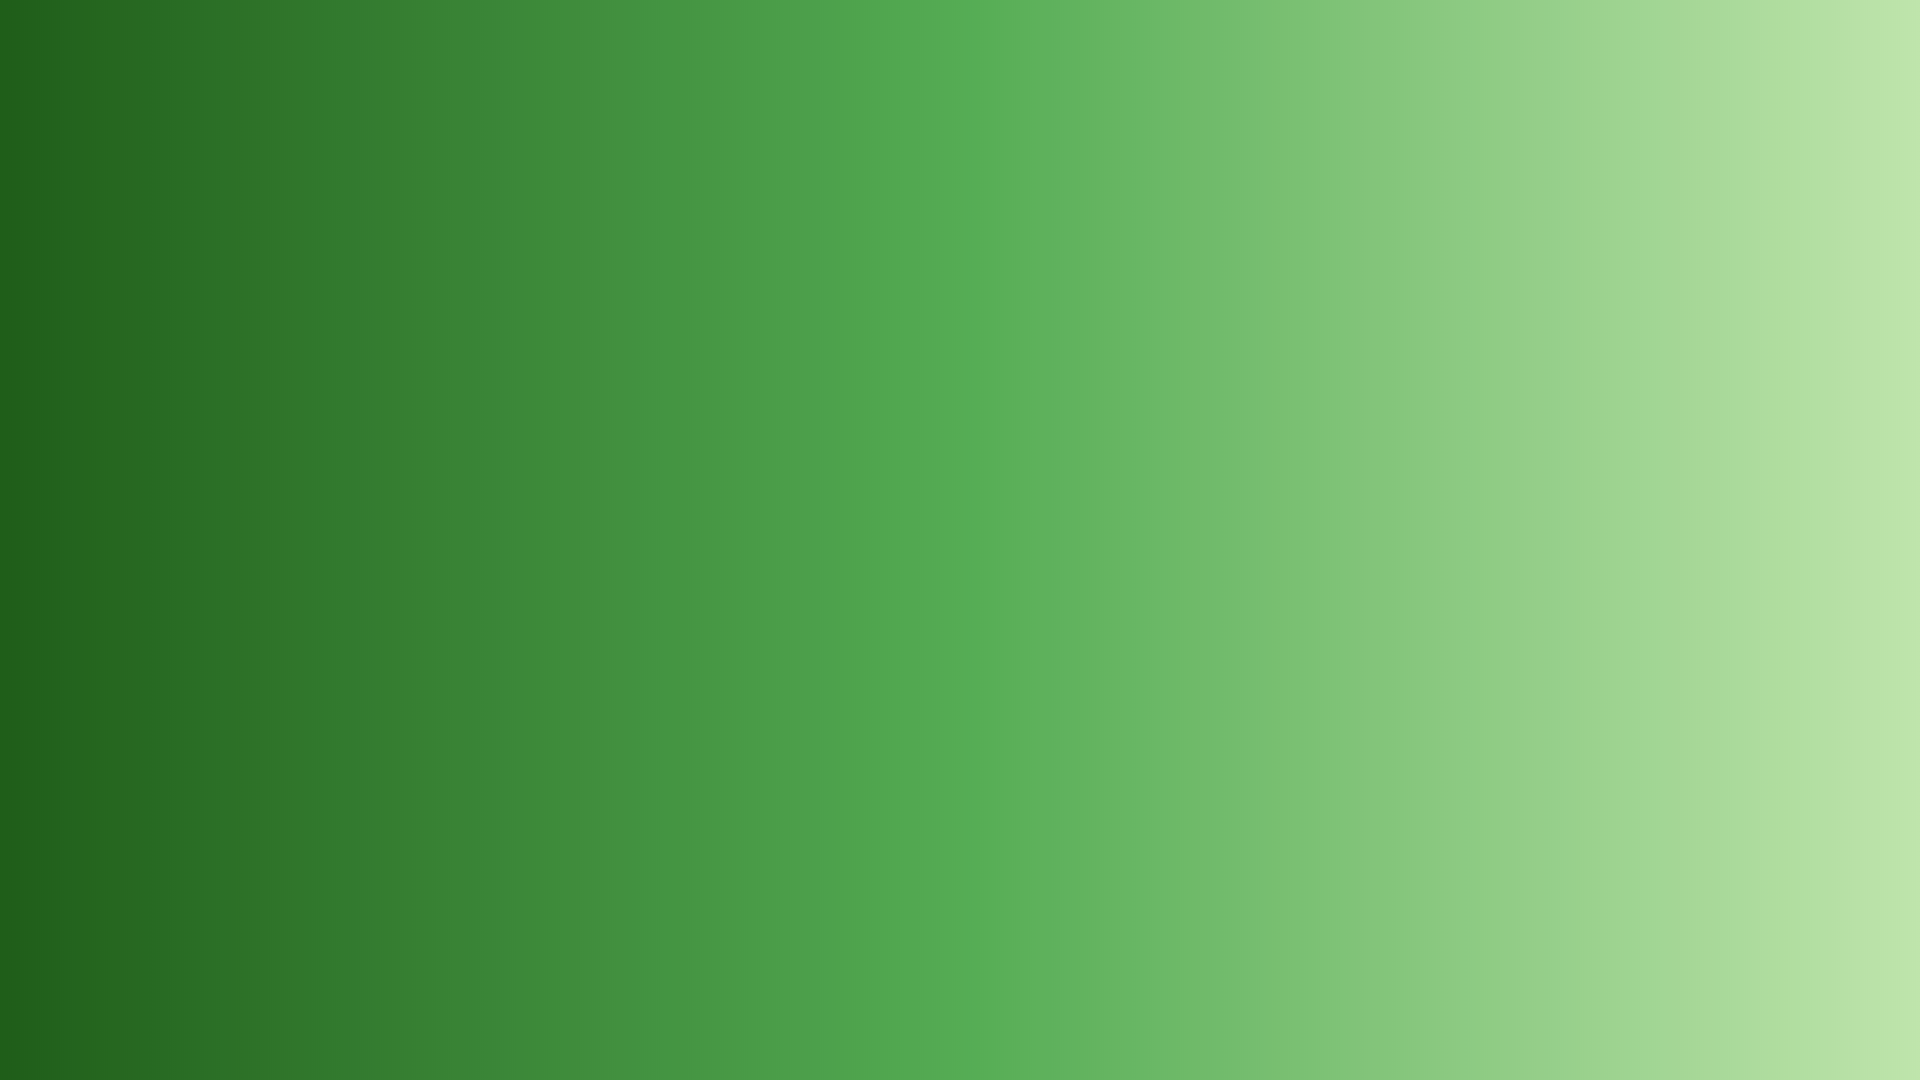 Green Gradient (CSS Gradients + Color Gradients